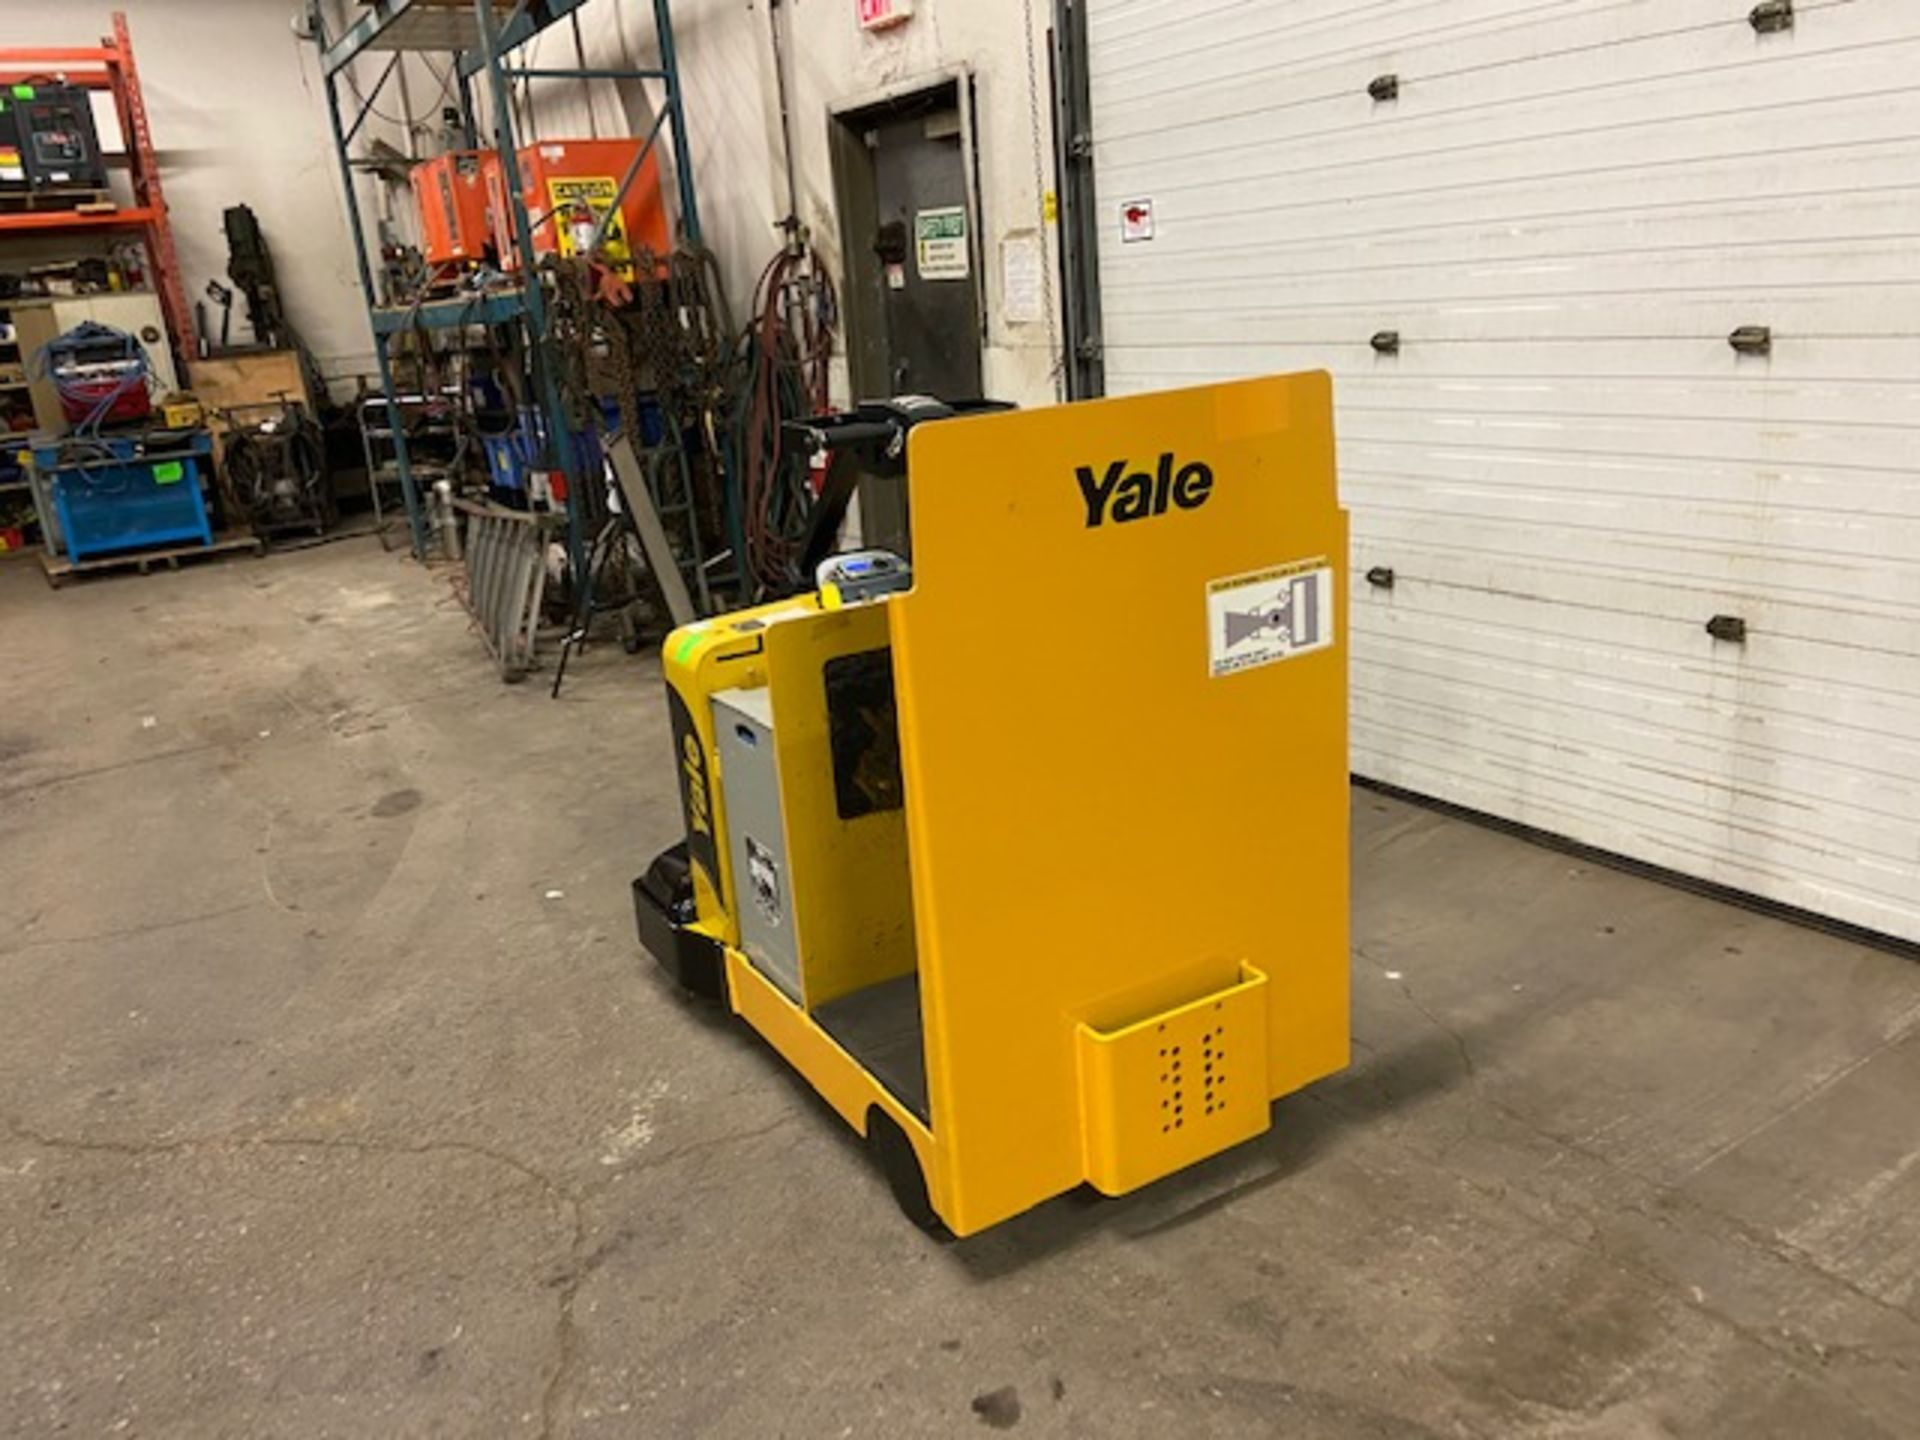 2014 Yale Ride On Tow Tractor - Tugger / Personal Carrier Electric 24V - Image 4 of 4